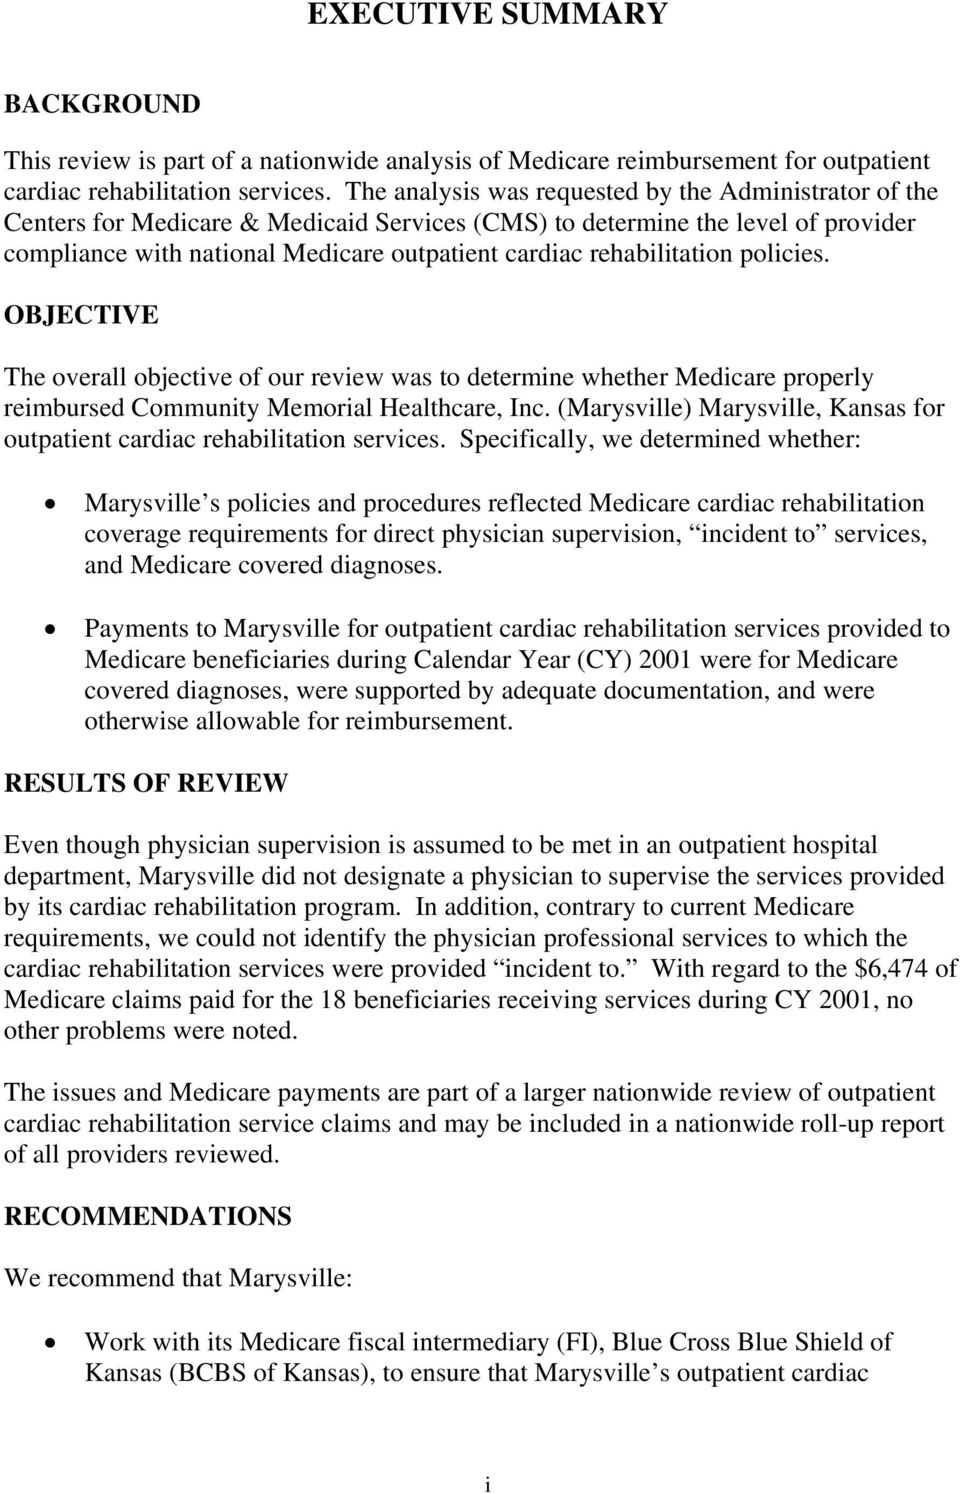 rehabilitation policies. OBJECTIVE The overall objective of our review was to determine whether Medicare properly reimbursed Community Memorial Healthcare, Inc.